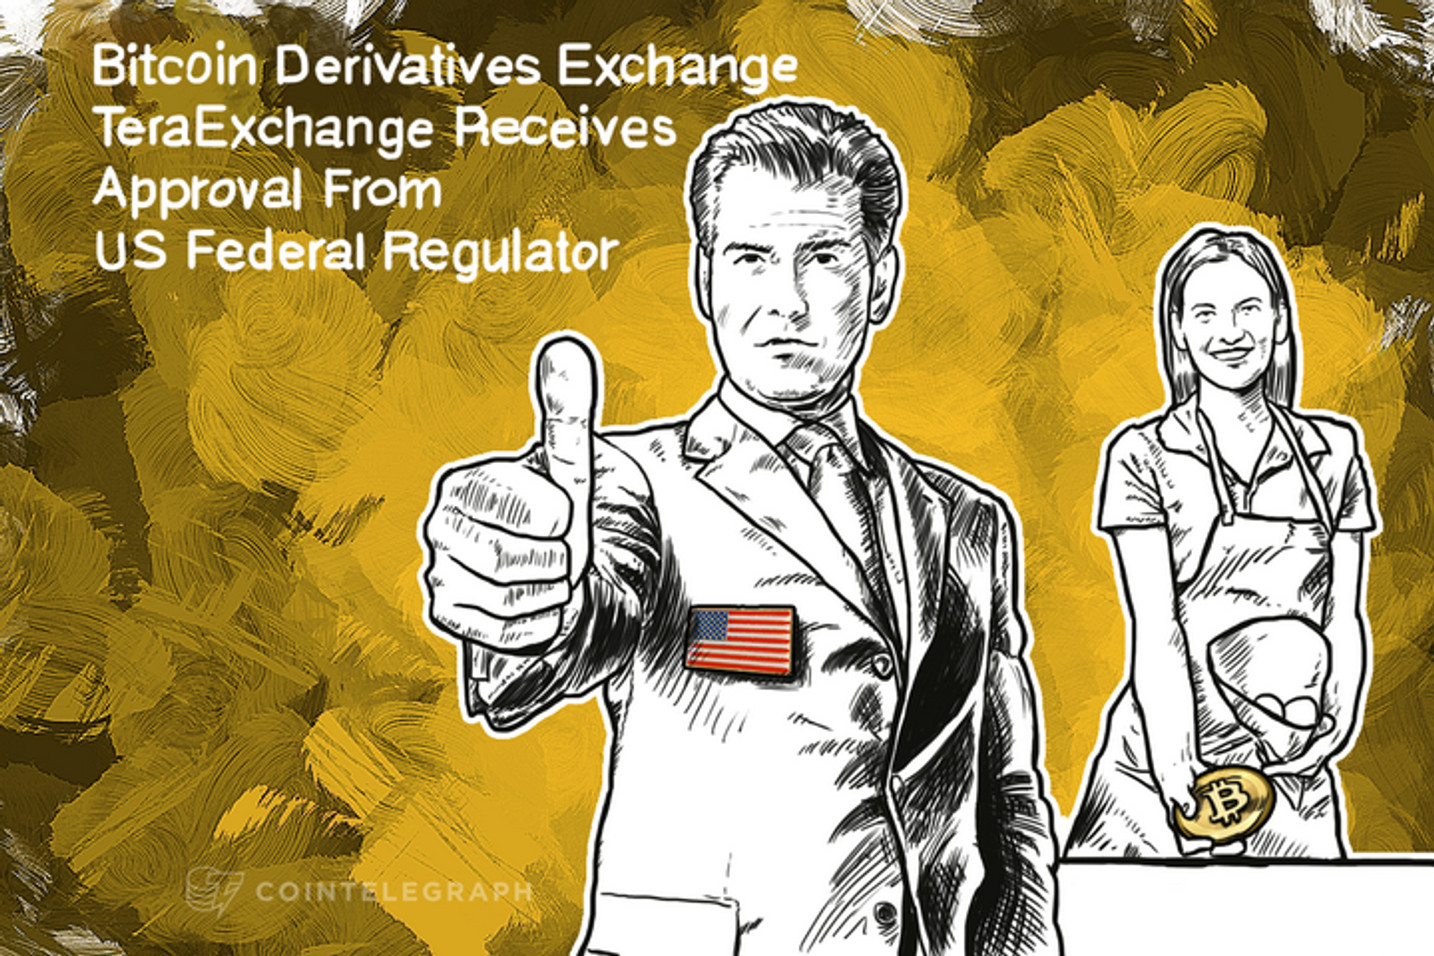 Bitcoin Derivatives Exchange TeraExchange Receives Approval From US Federal Regulator